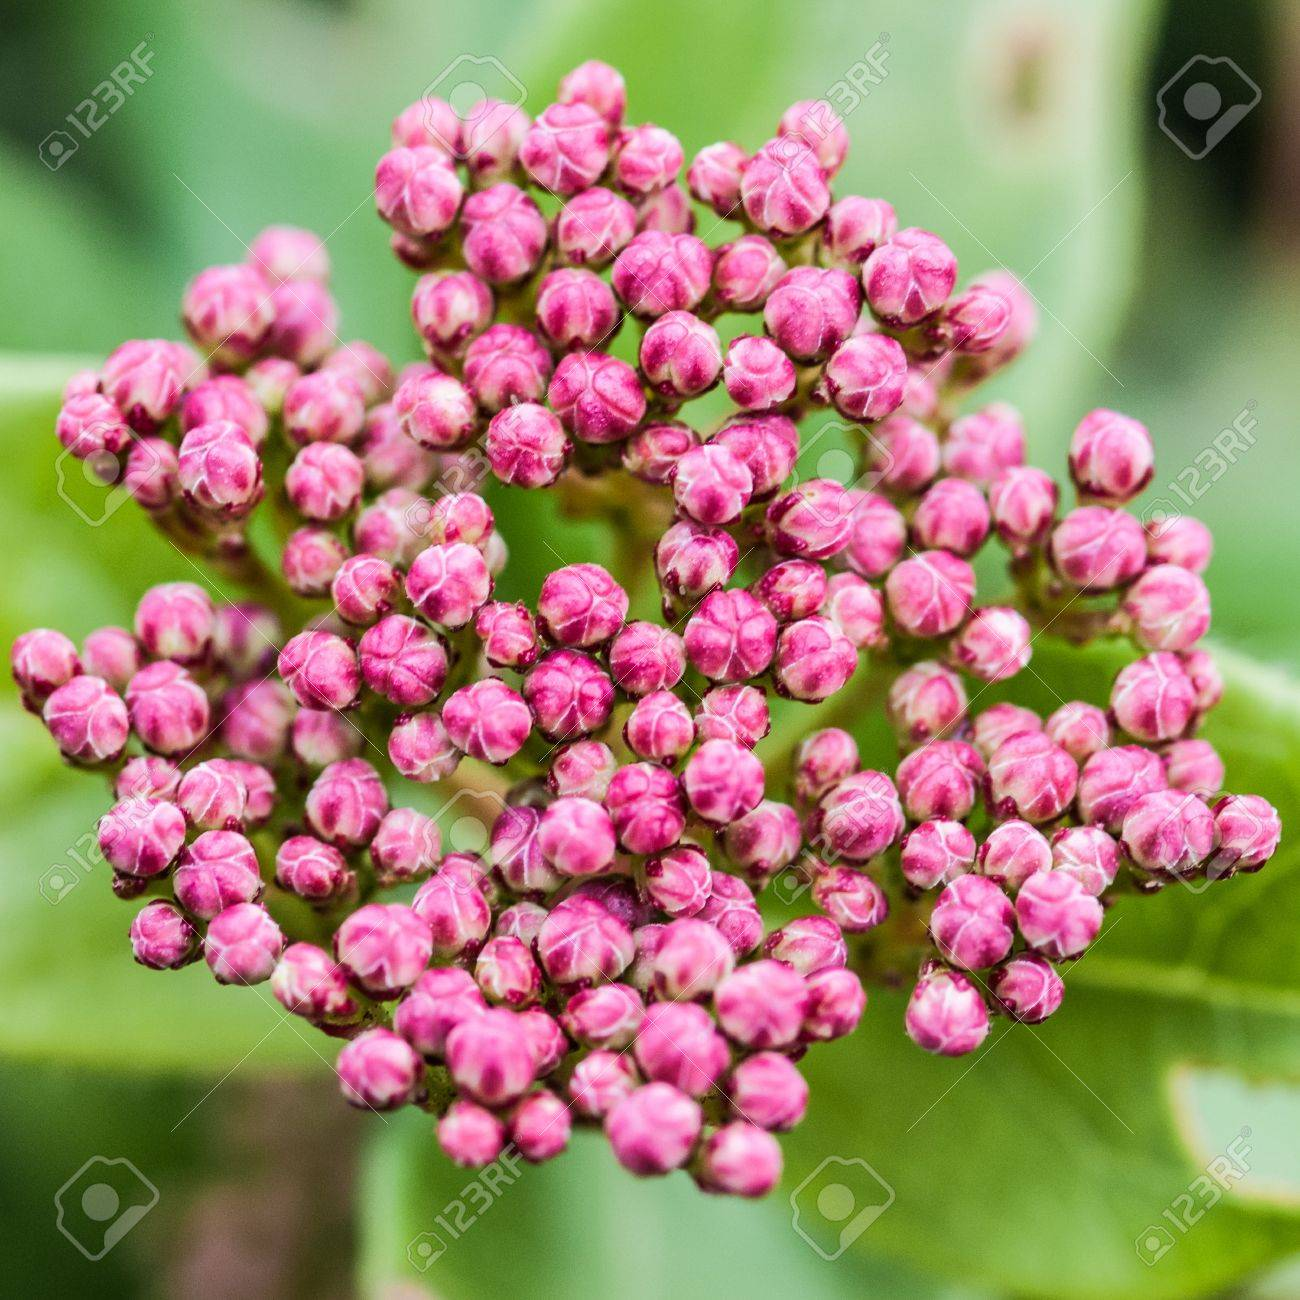 A Macro Shot Of The Tiny Flower Buds Of A Viburnum Bush Stock Photo